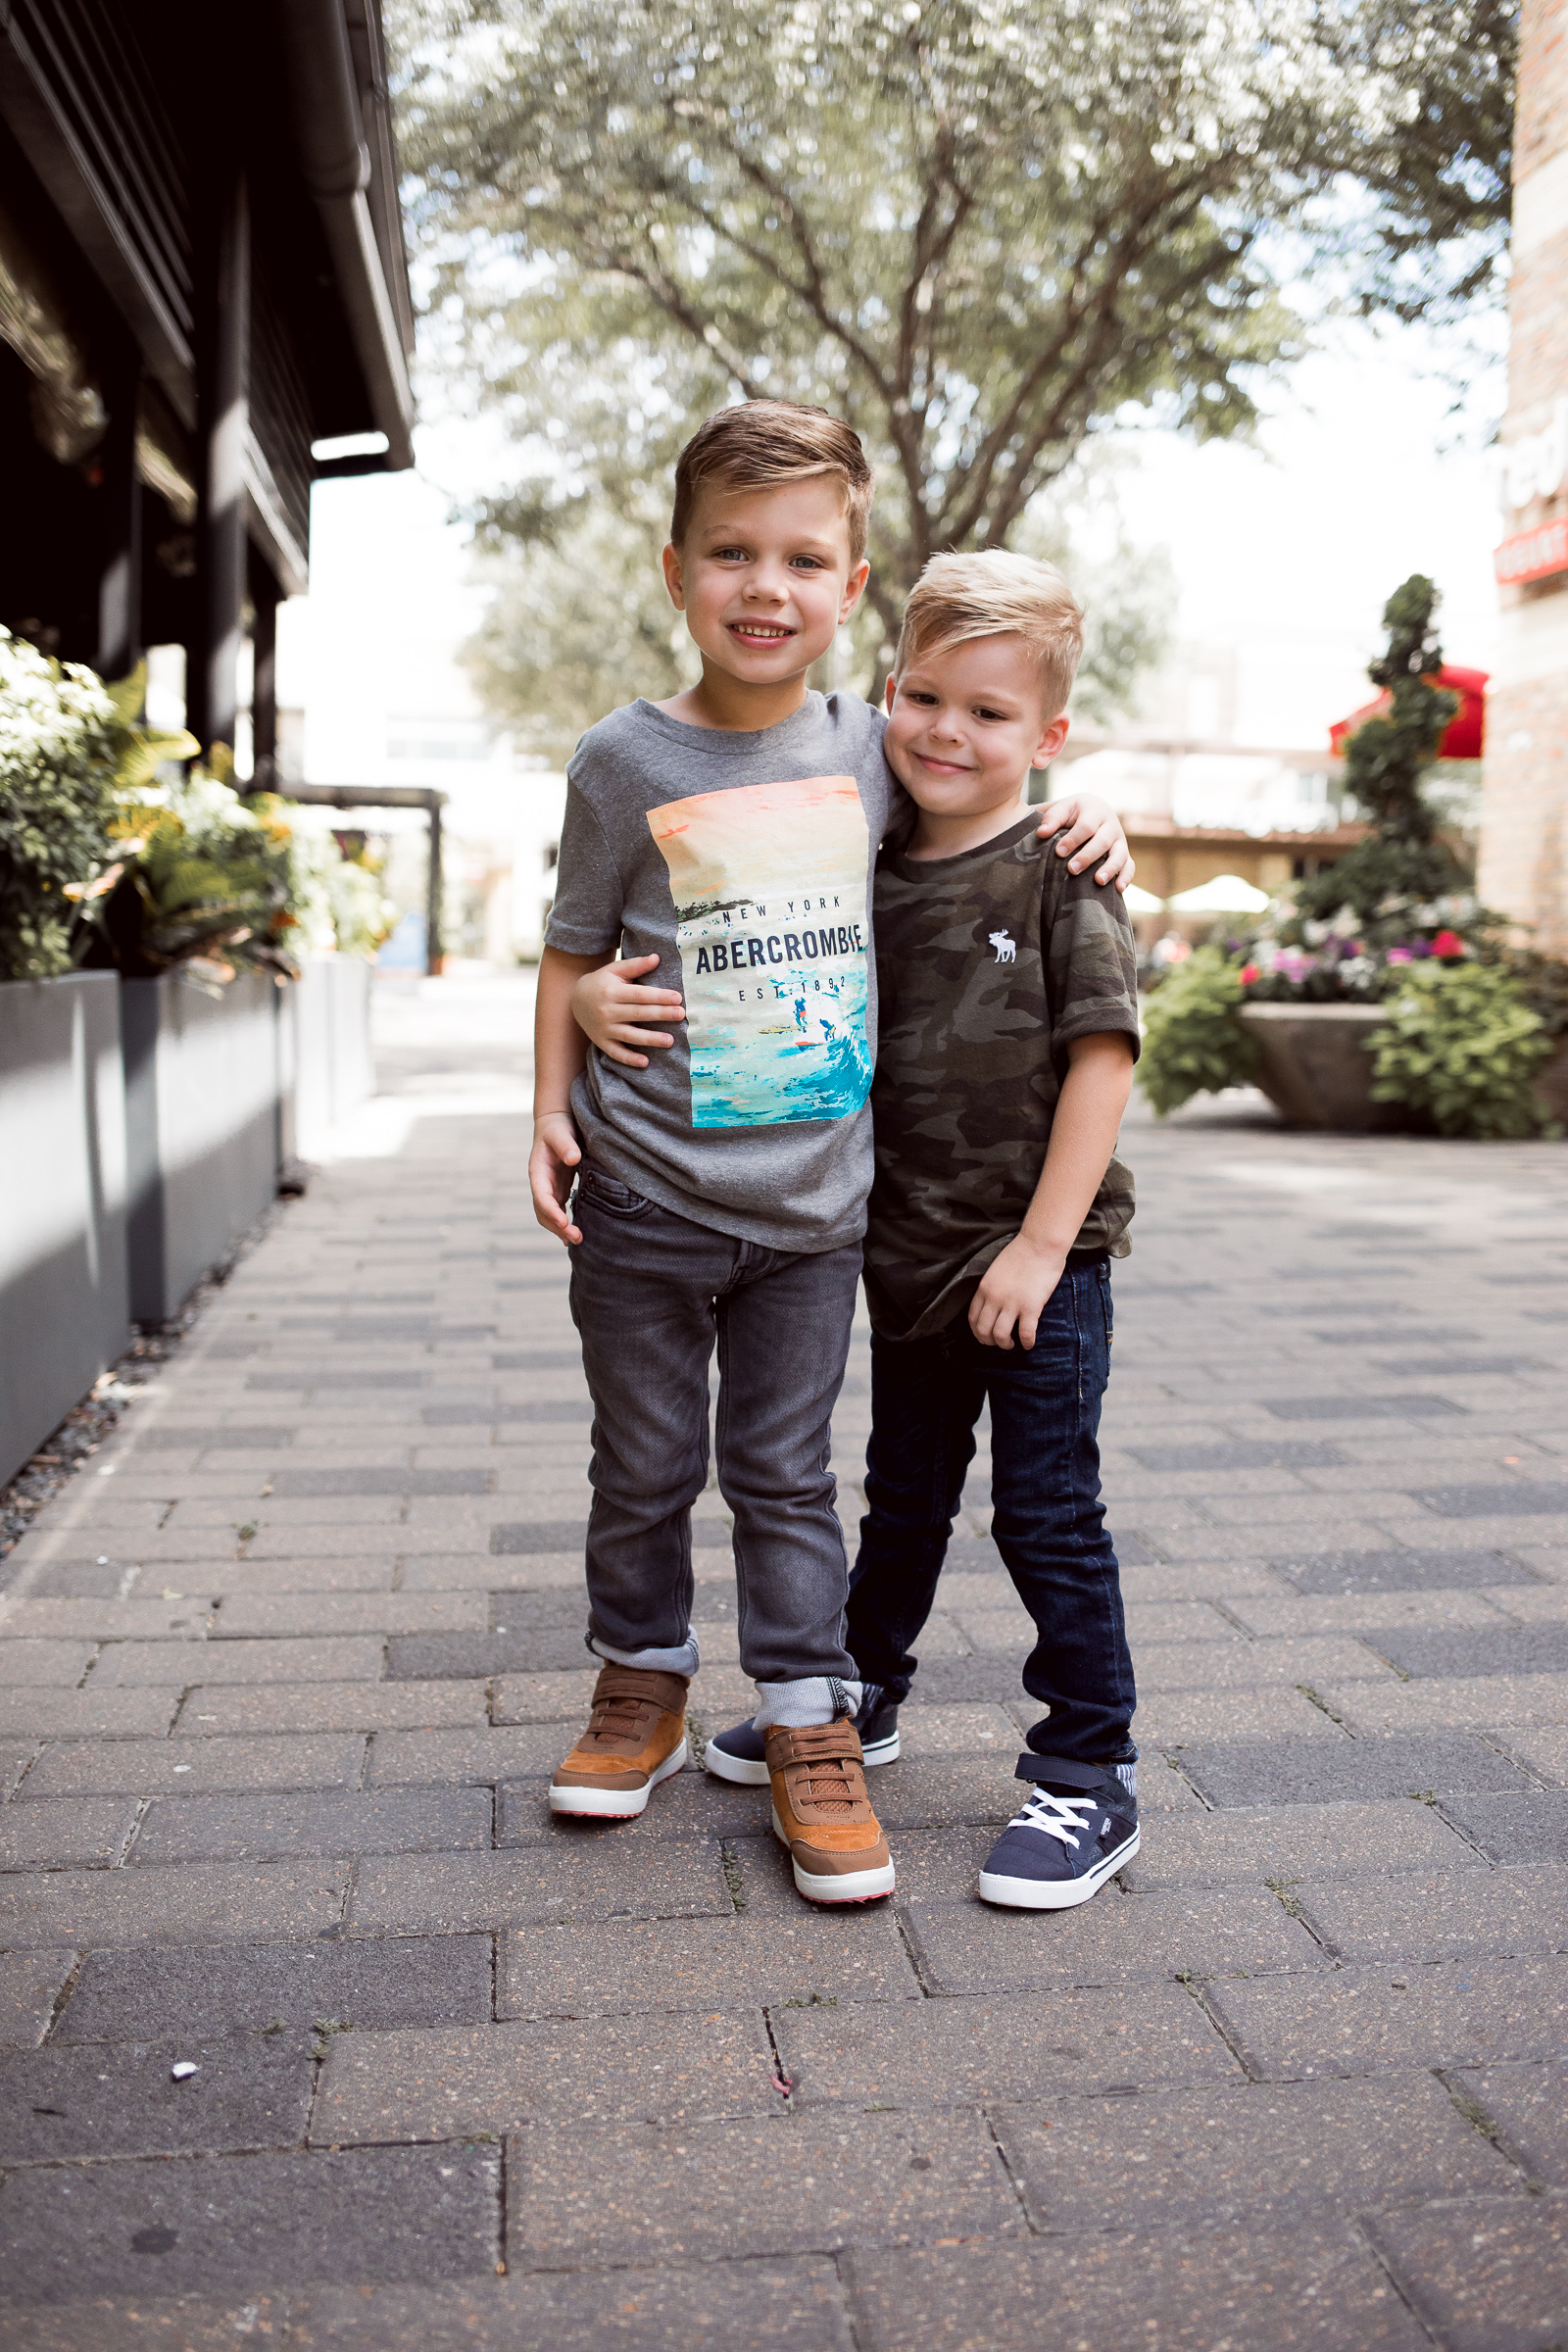 Houston fashion blogger Uptown with Elly Brown shares how to dress your kids in style with Abercrombie kids for Back to School!